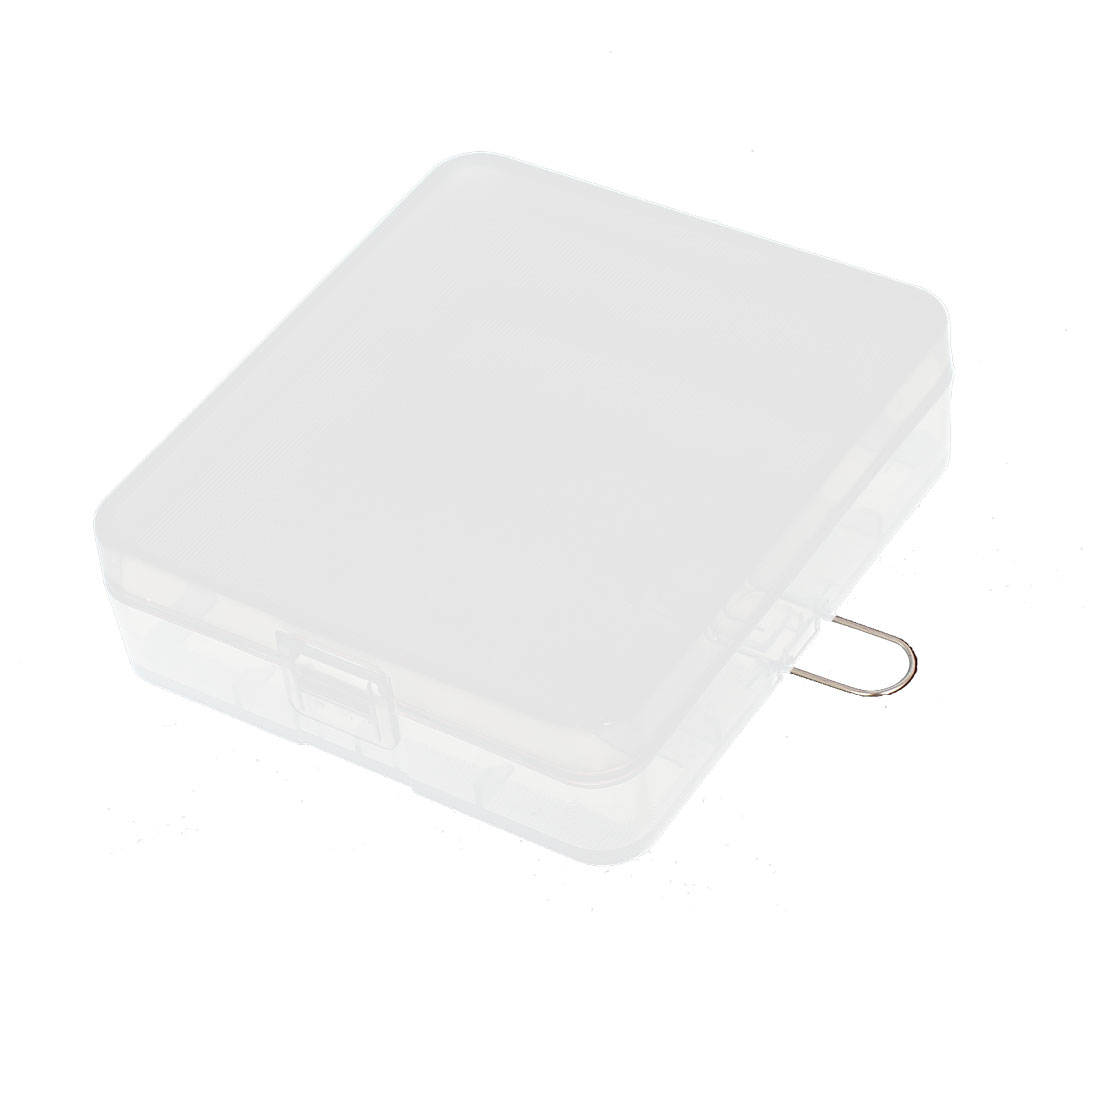 Clear Rectangle Storage Box Case Container Holder for 4 x 18650 Batteries